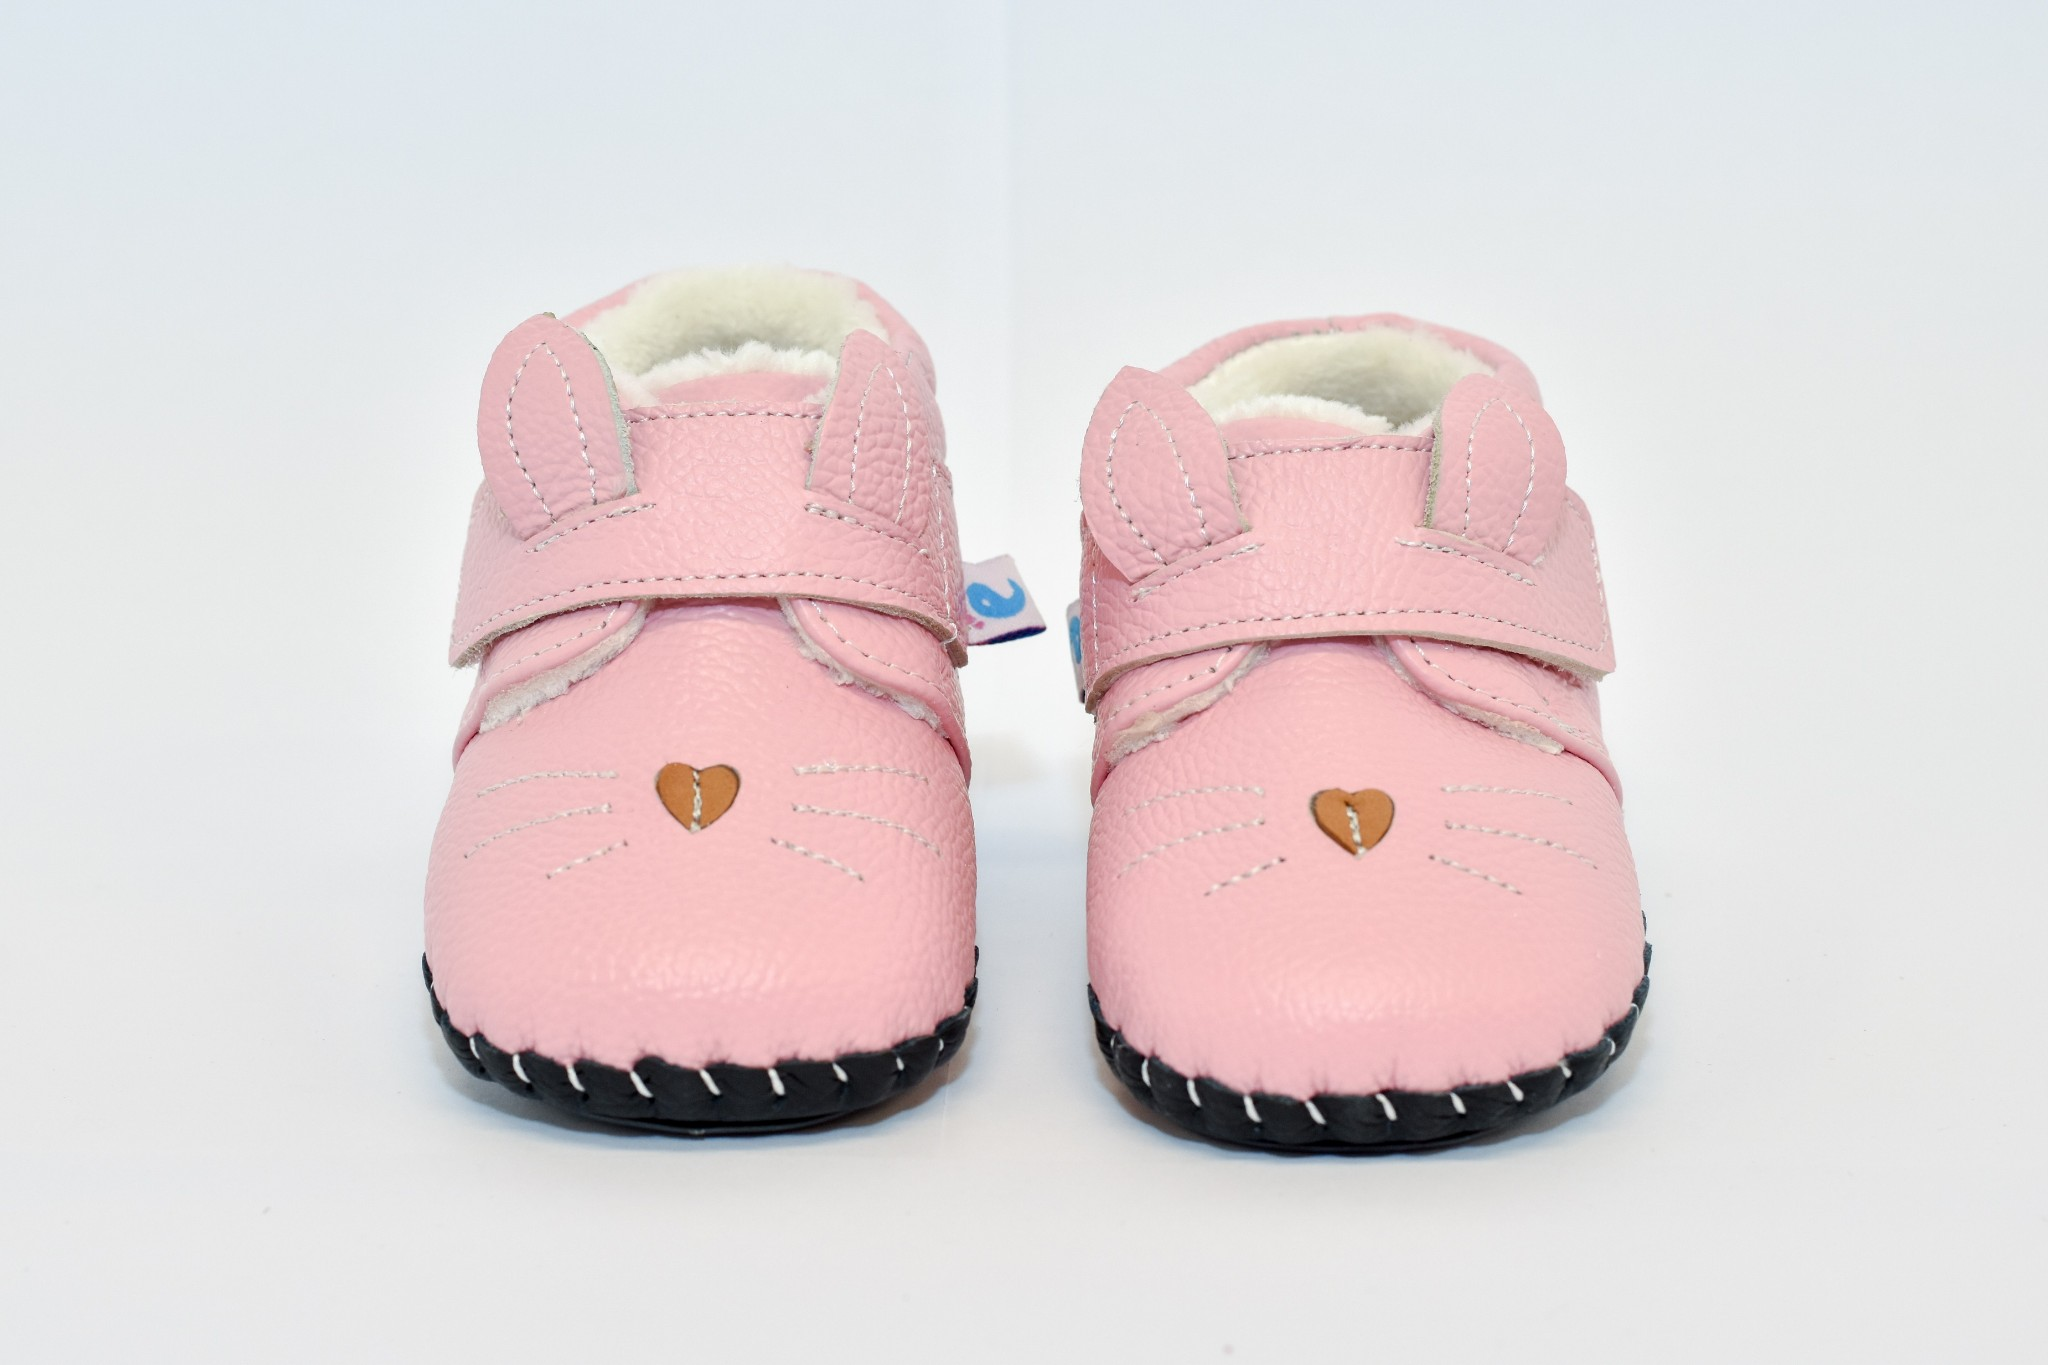 317cda273a80d Kitty - baby shoes - baby boots